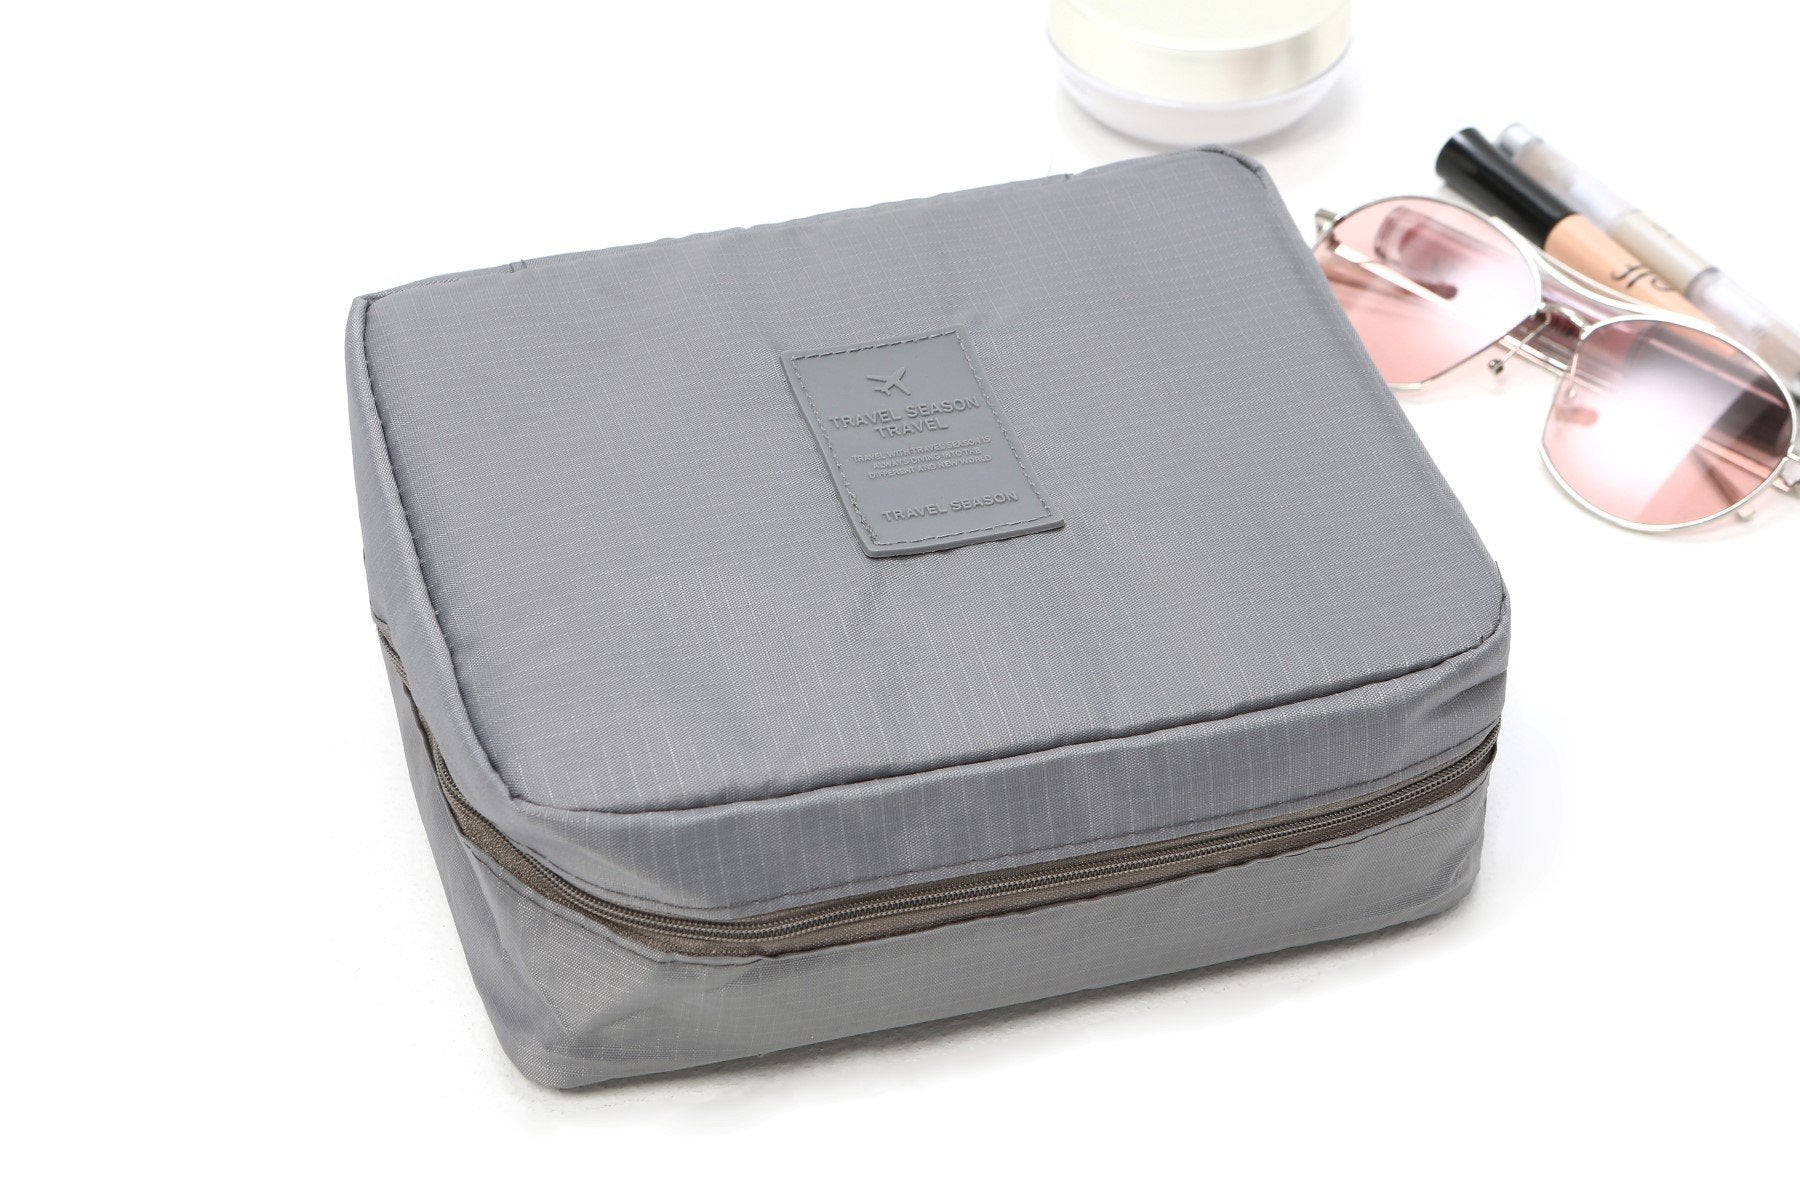 LM TRAVEL SEASON Goodies Wash Bag 手提洗漱包 - 灰色